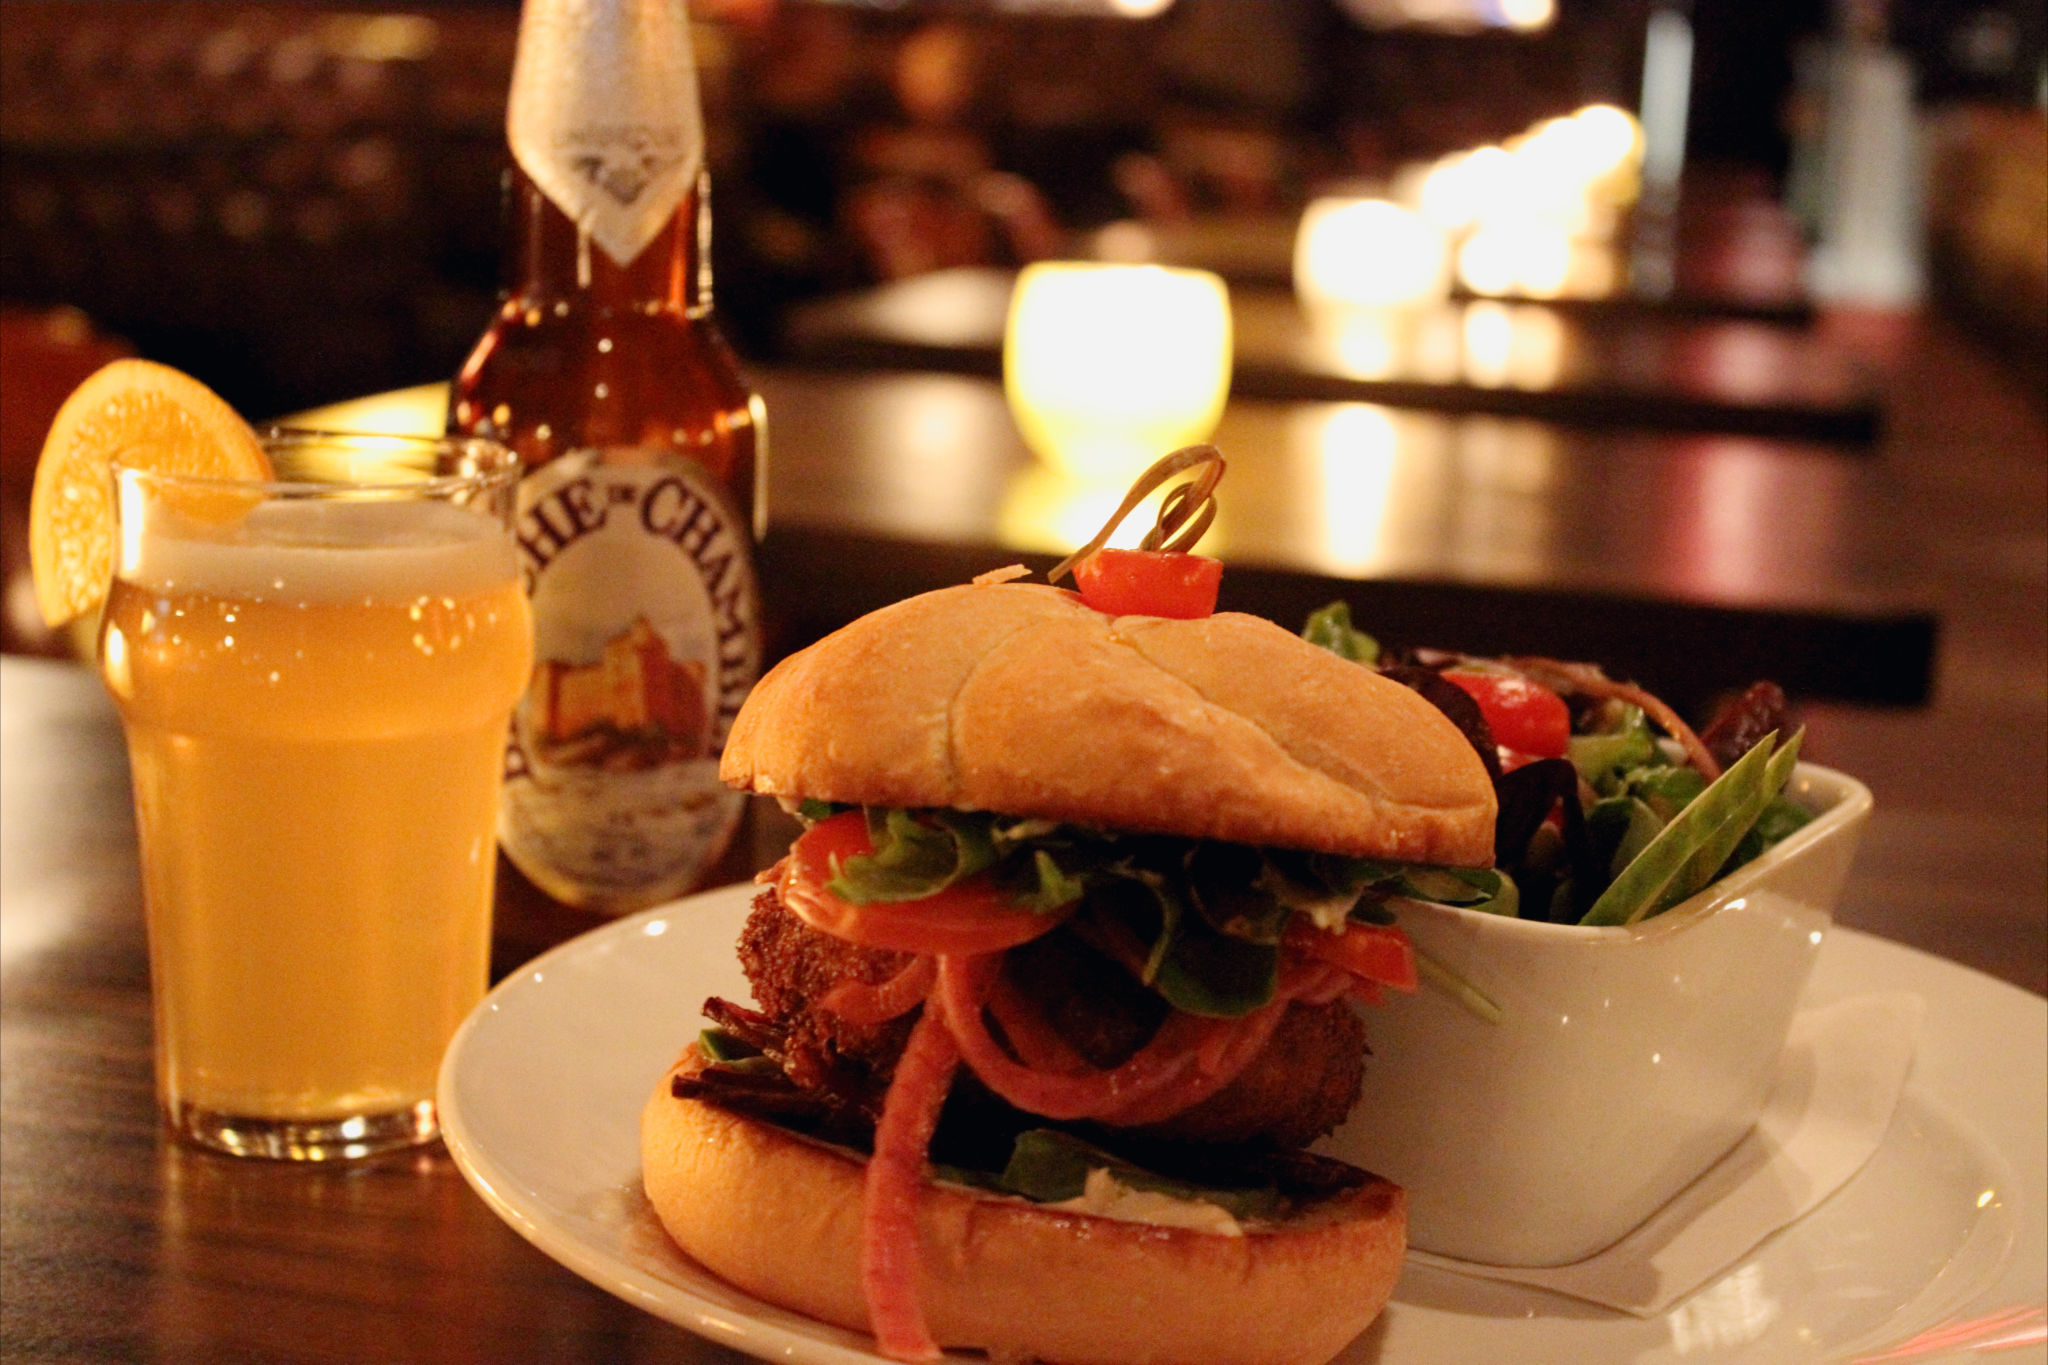 February 2013 This Sandwich That Beer